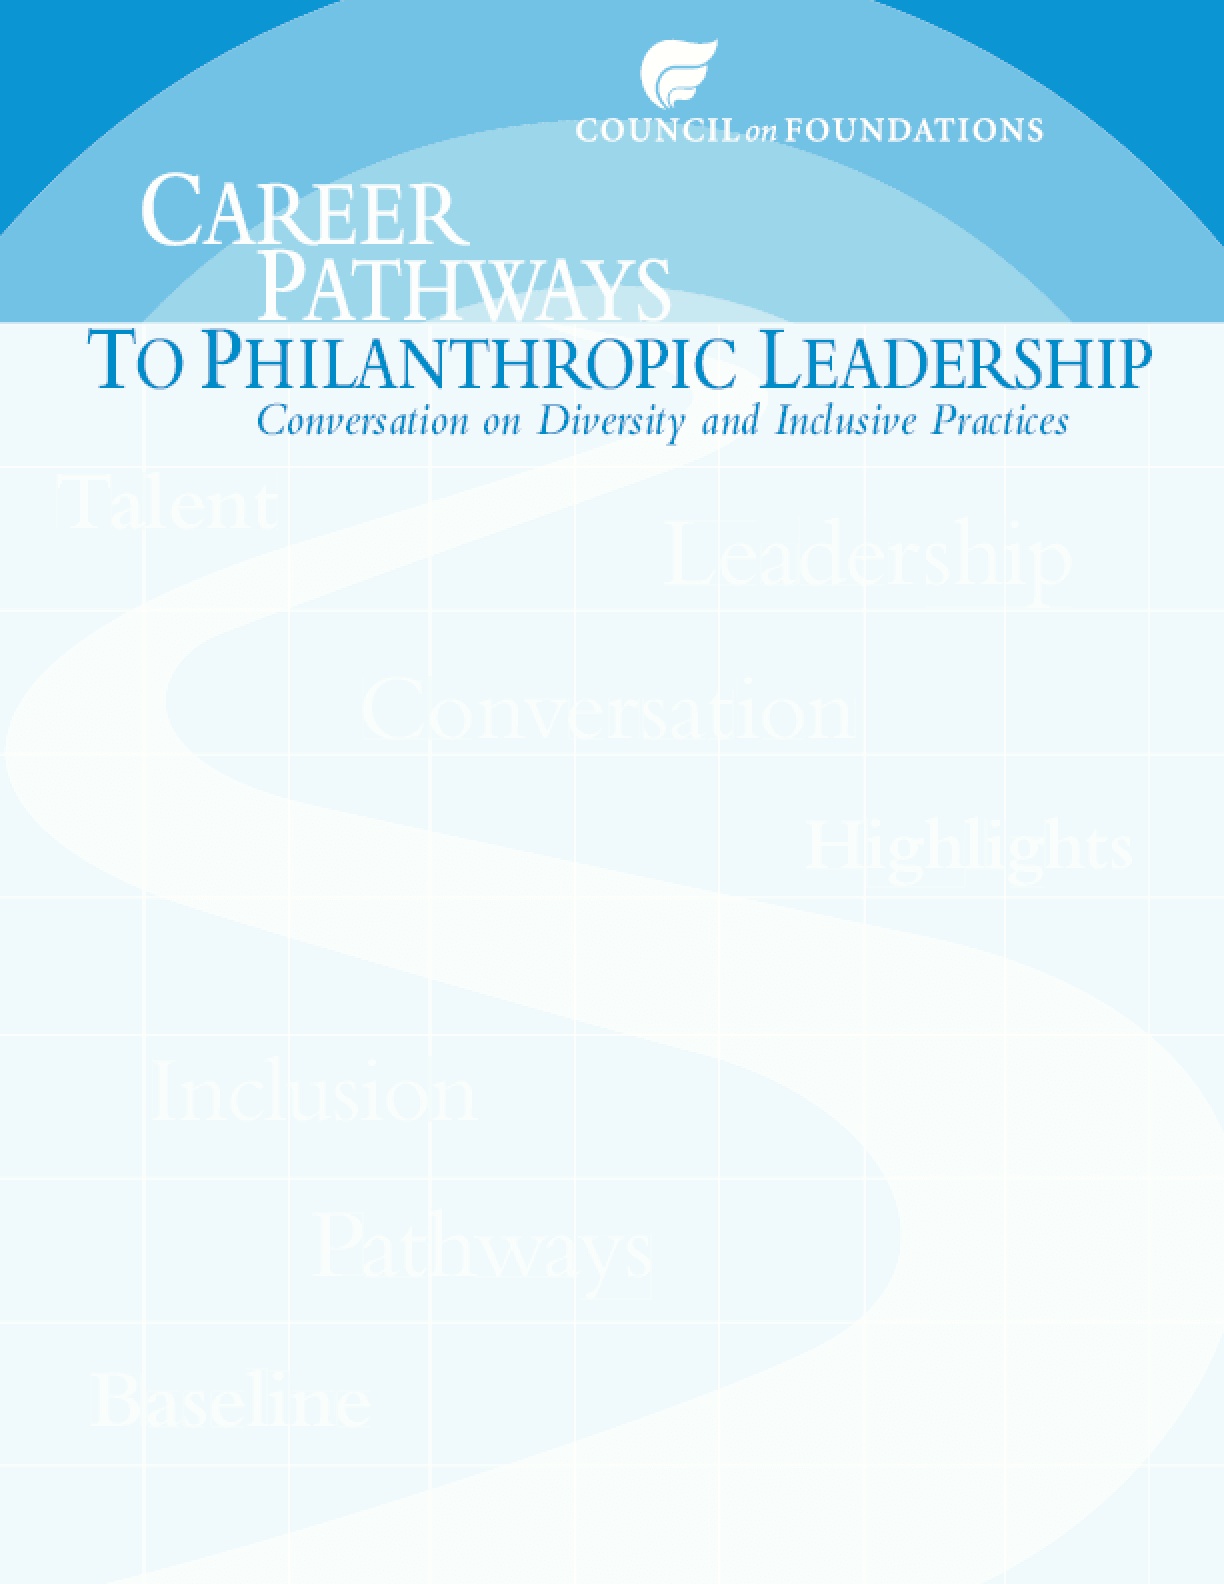 Career Pathways to Philanthropic Leadership: Conversation on Diversity and Inclusive Practices